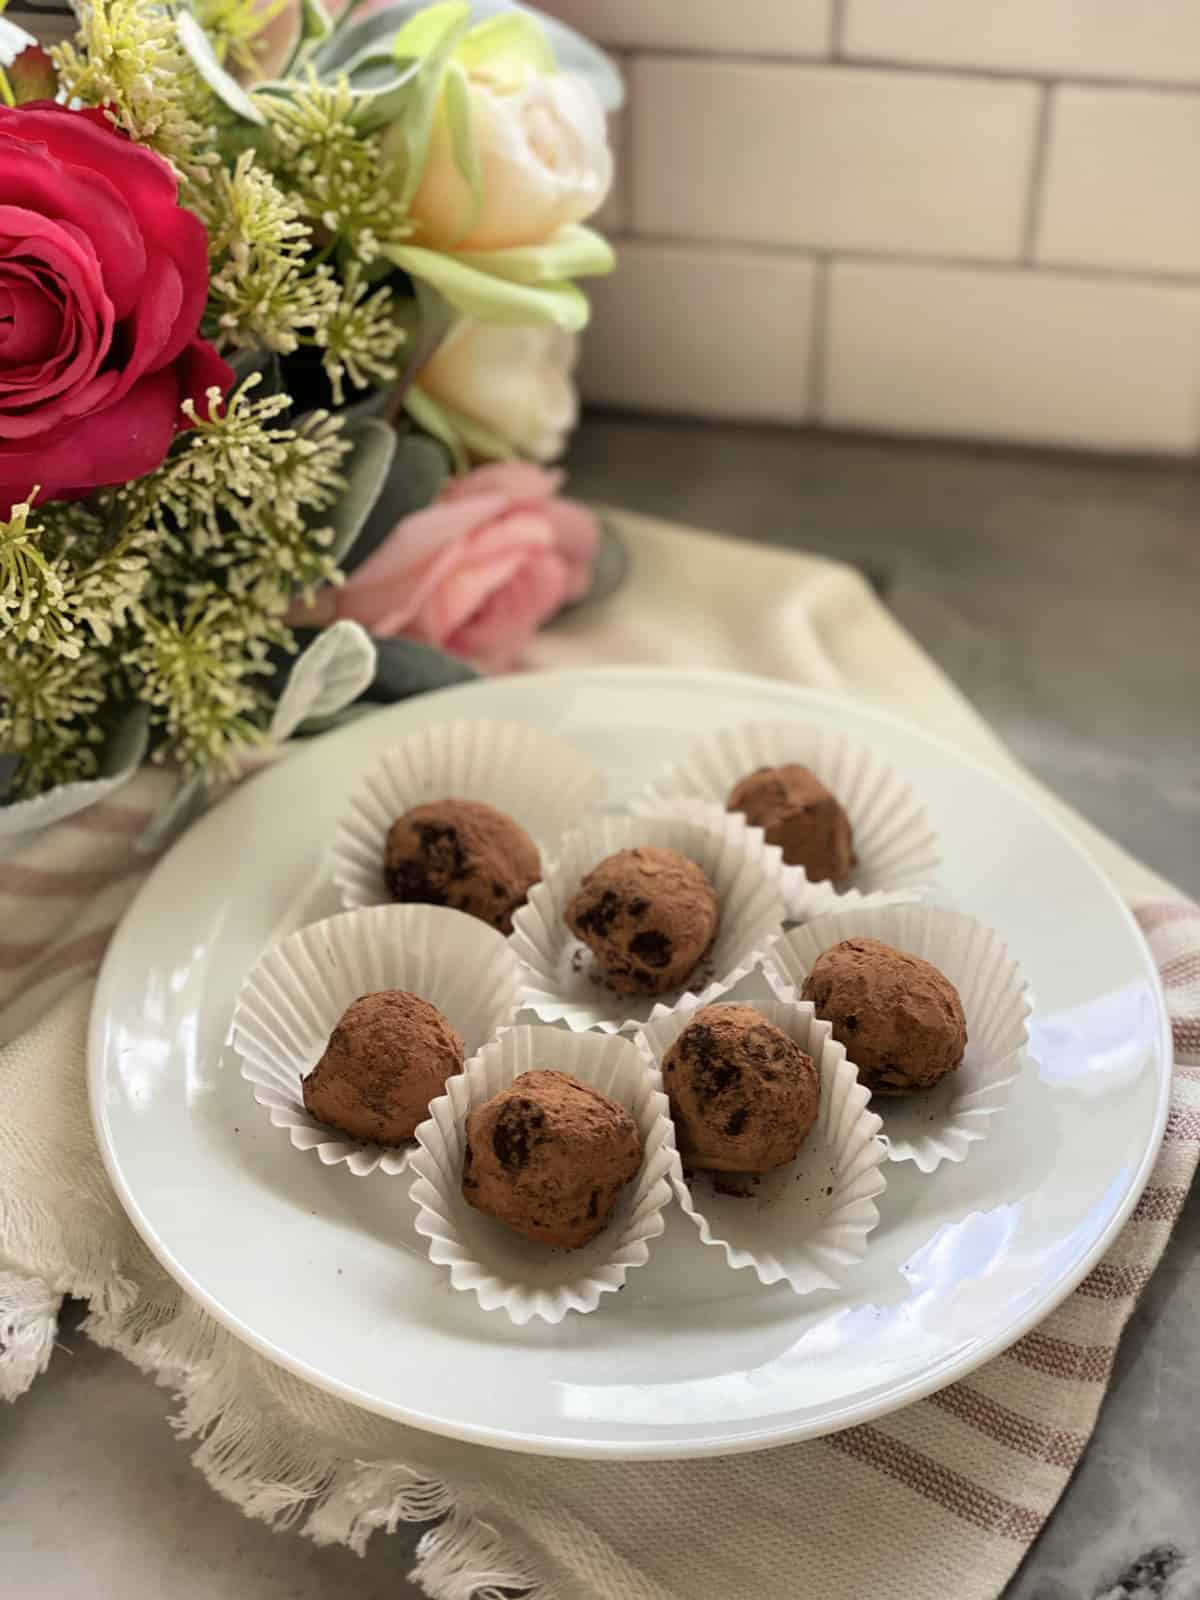 White plate filled with 7 cocoa dusted chocolate truffles with roses in background.